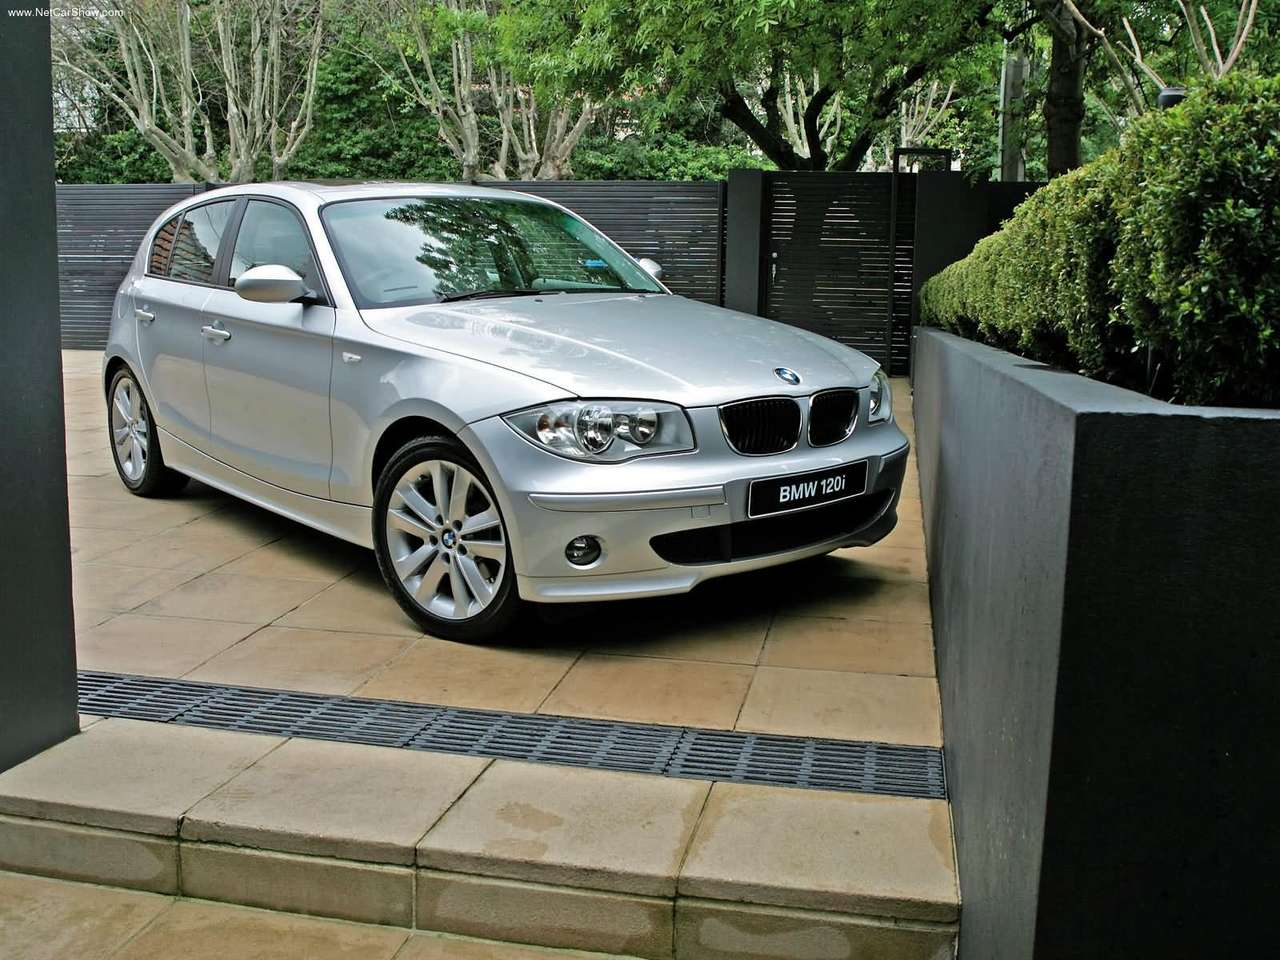 bmw 1-series, bmw, 1-series, 116i, 118i, 120i, ultimate driving machine, 130i, m sport, bmw m sport, german, german car, motoring, automotive, cars, car, autotrader, ebay, car sales, cheap car, not2grand